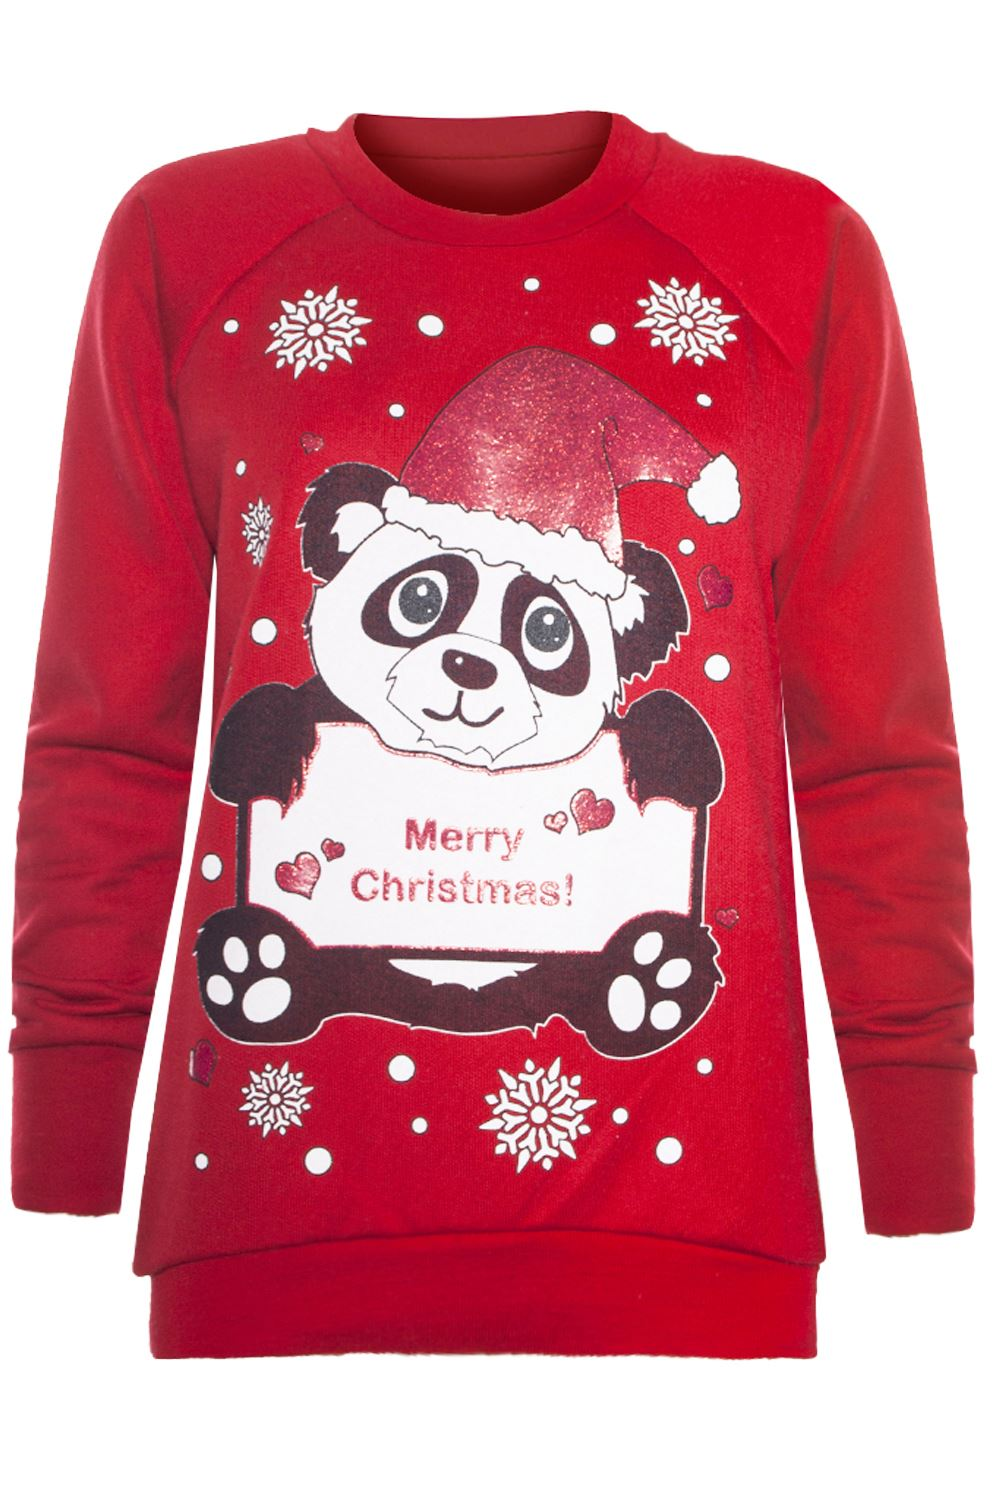 Ladies christmas sweater